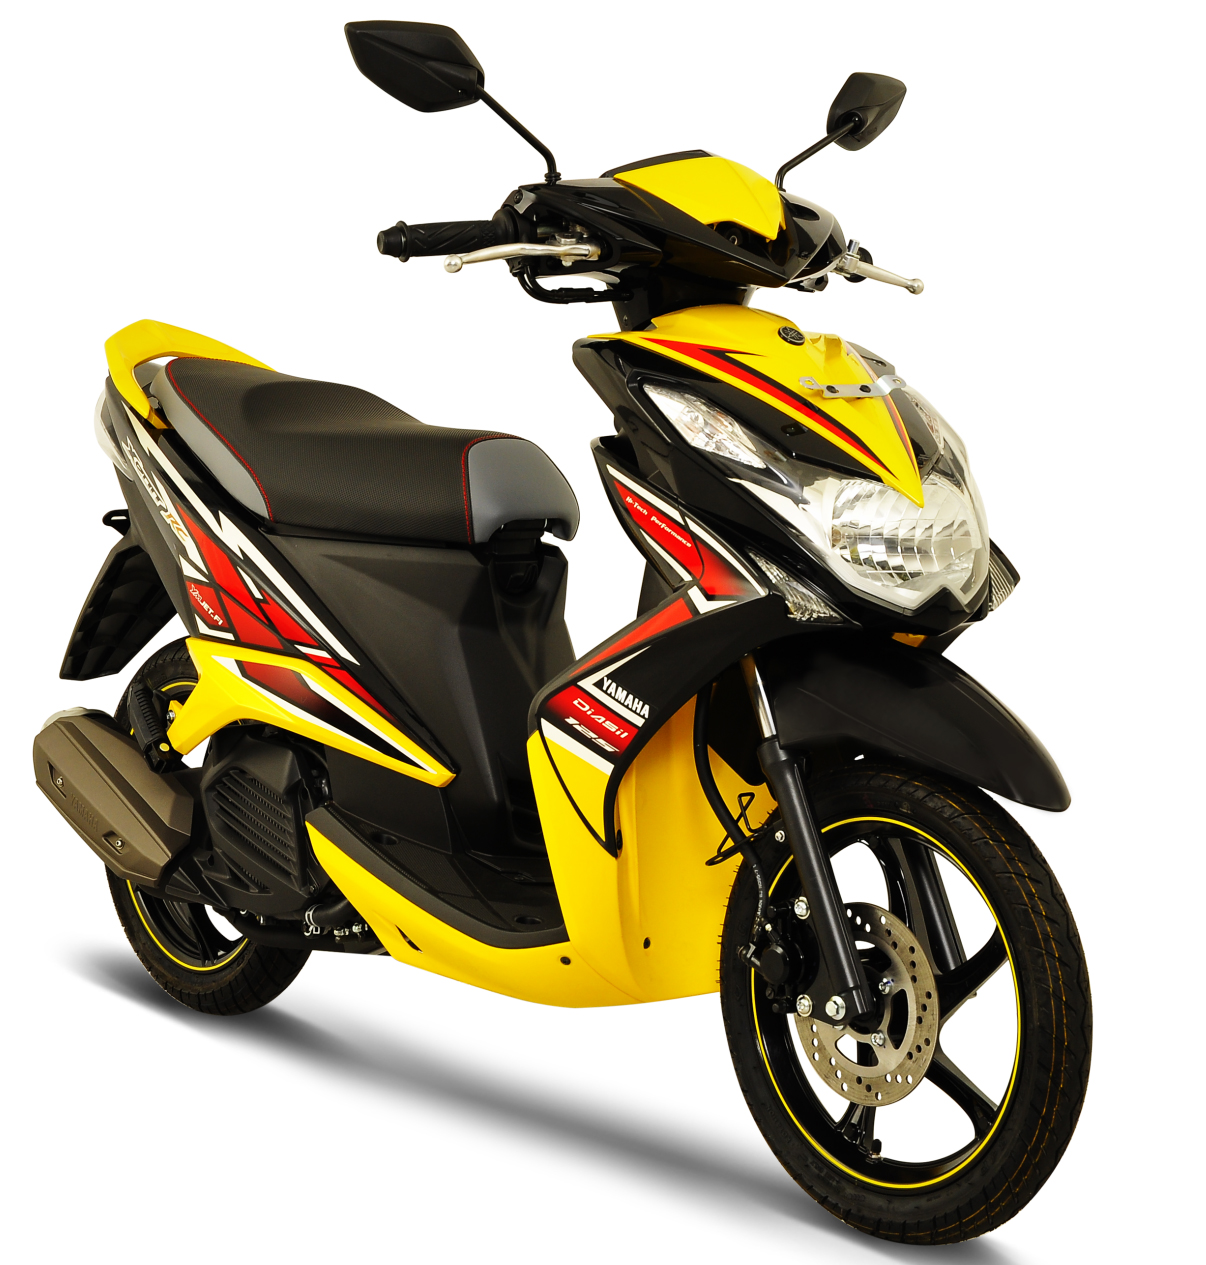 Motorcycle Review's: 2006 Satria From Raider Thailand